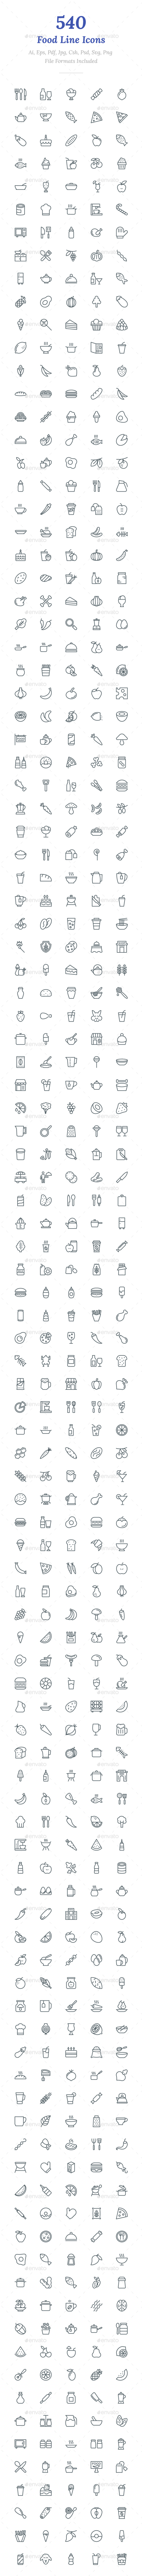 GraphicRiver 540 Food Line Icons 20701616